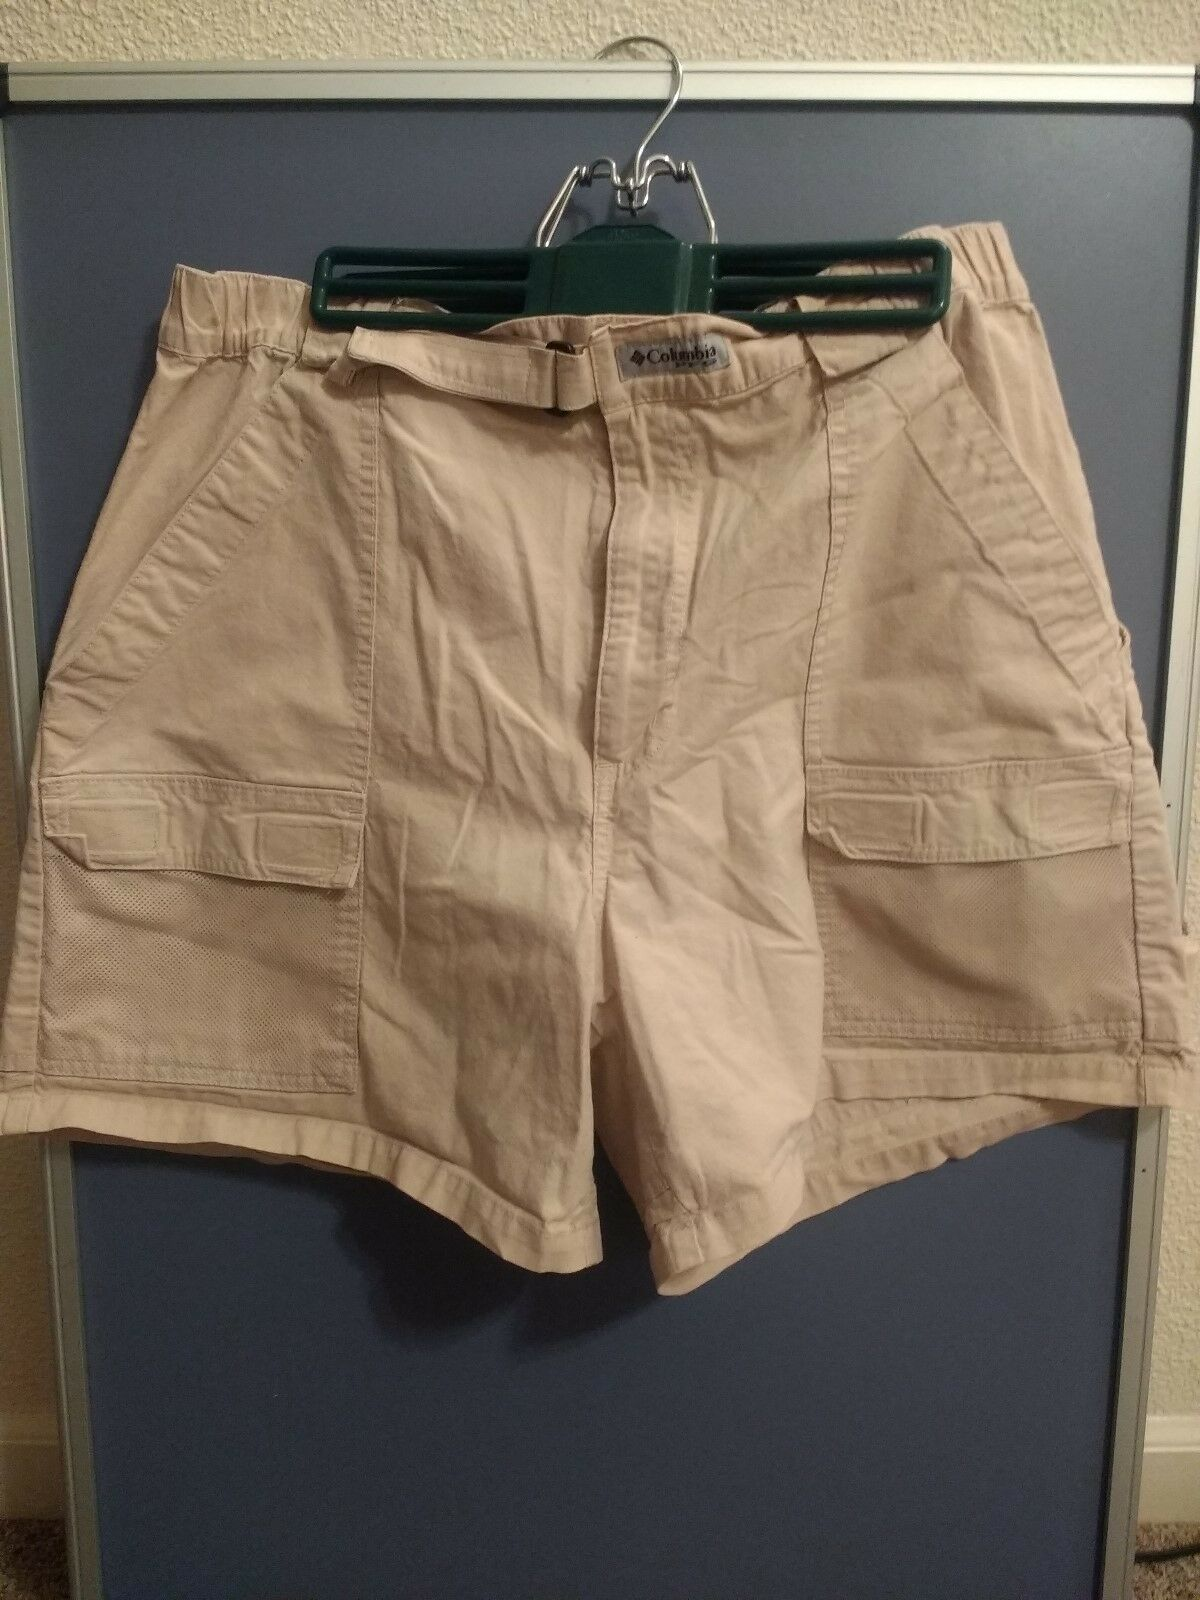 COLUMBIA PFG  Omni Shade Fishing Water SHORTS Size Large - Khaki - Cotton Blend